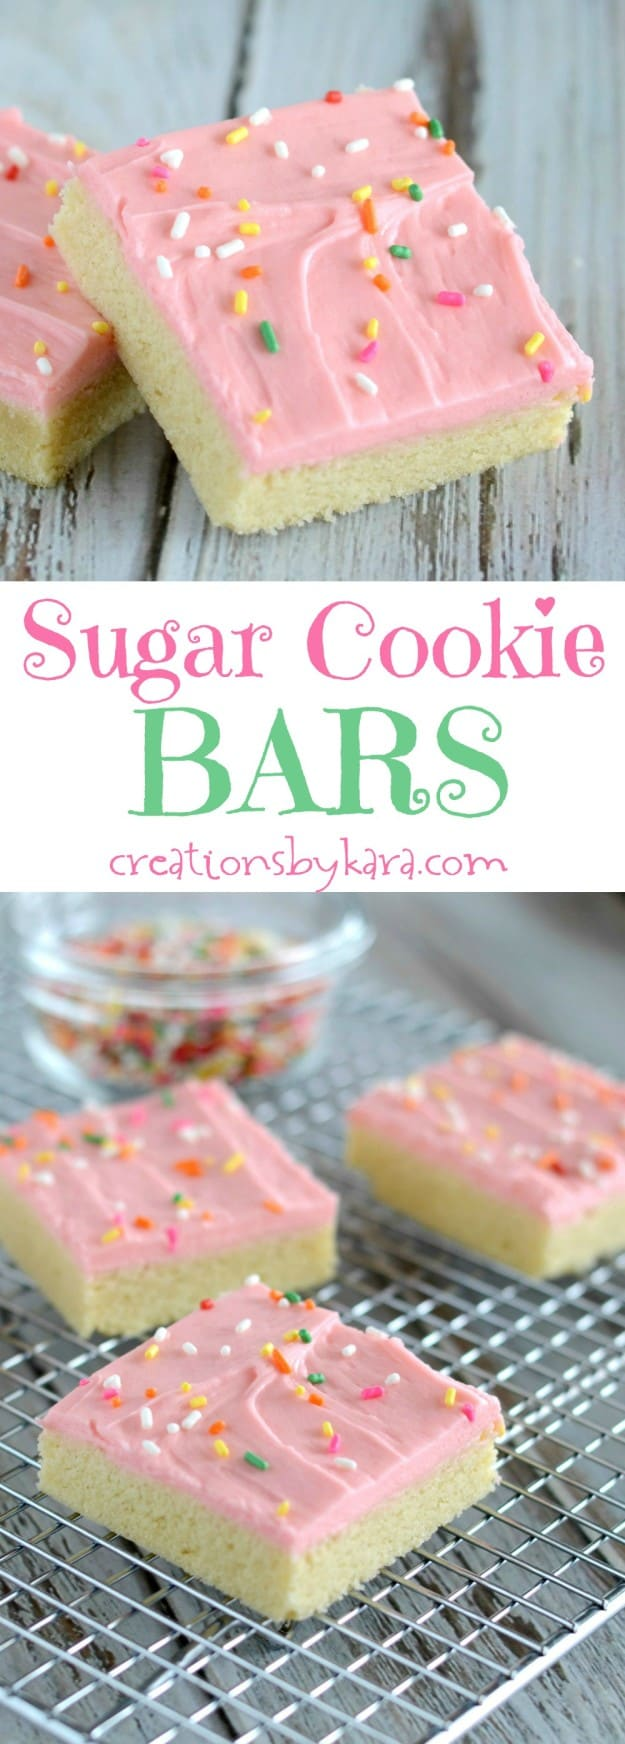 sugar cookie bars recipe collage